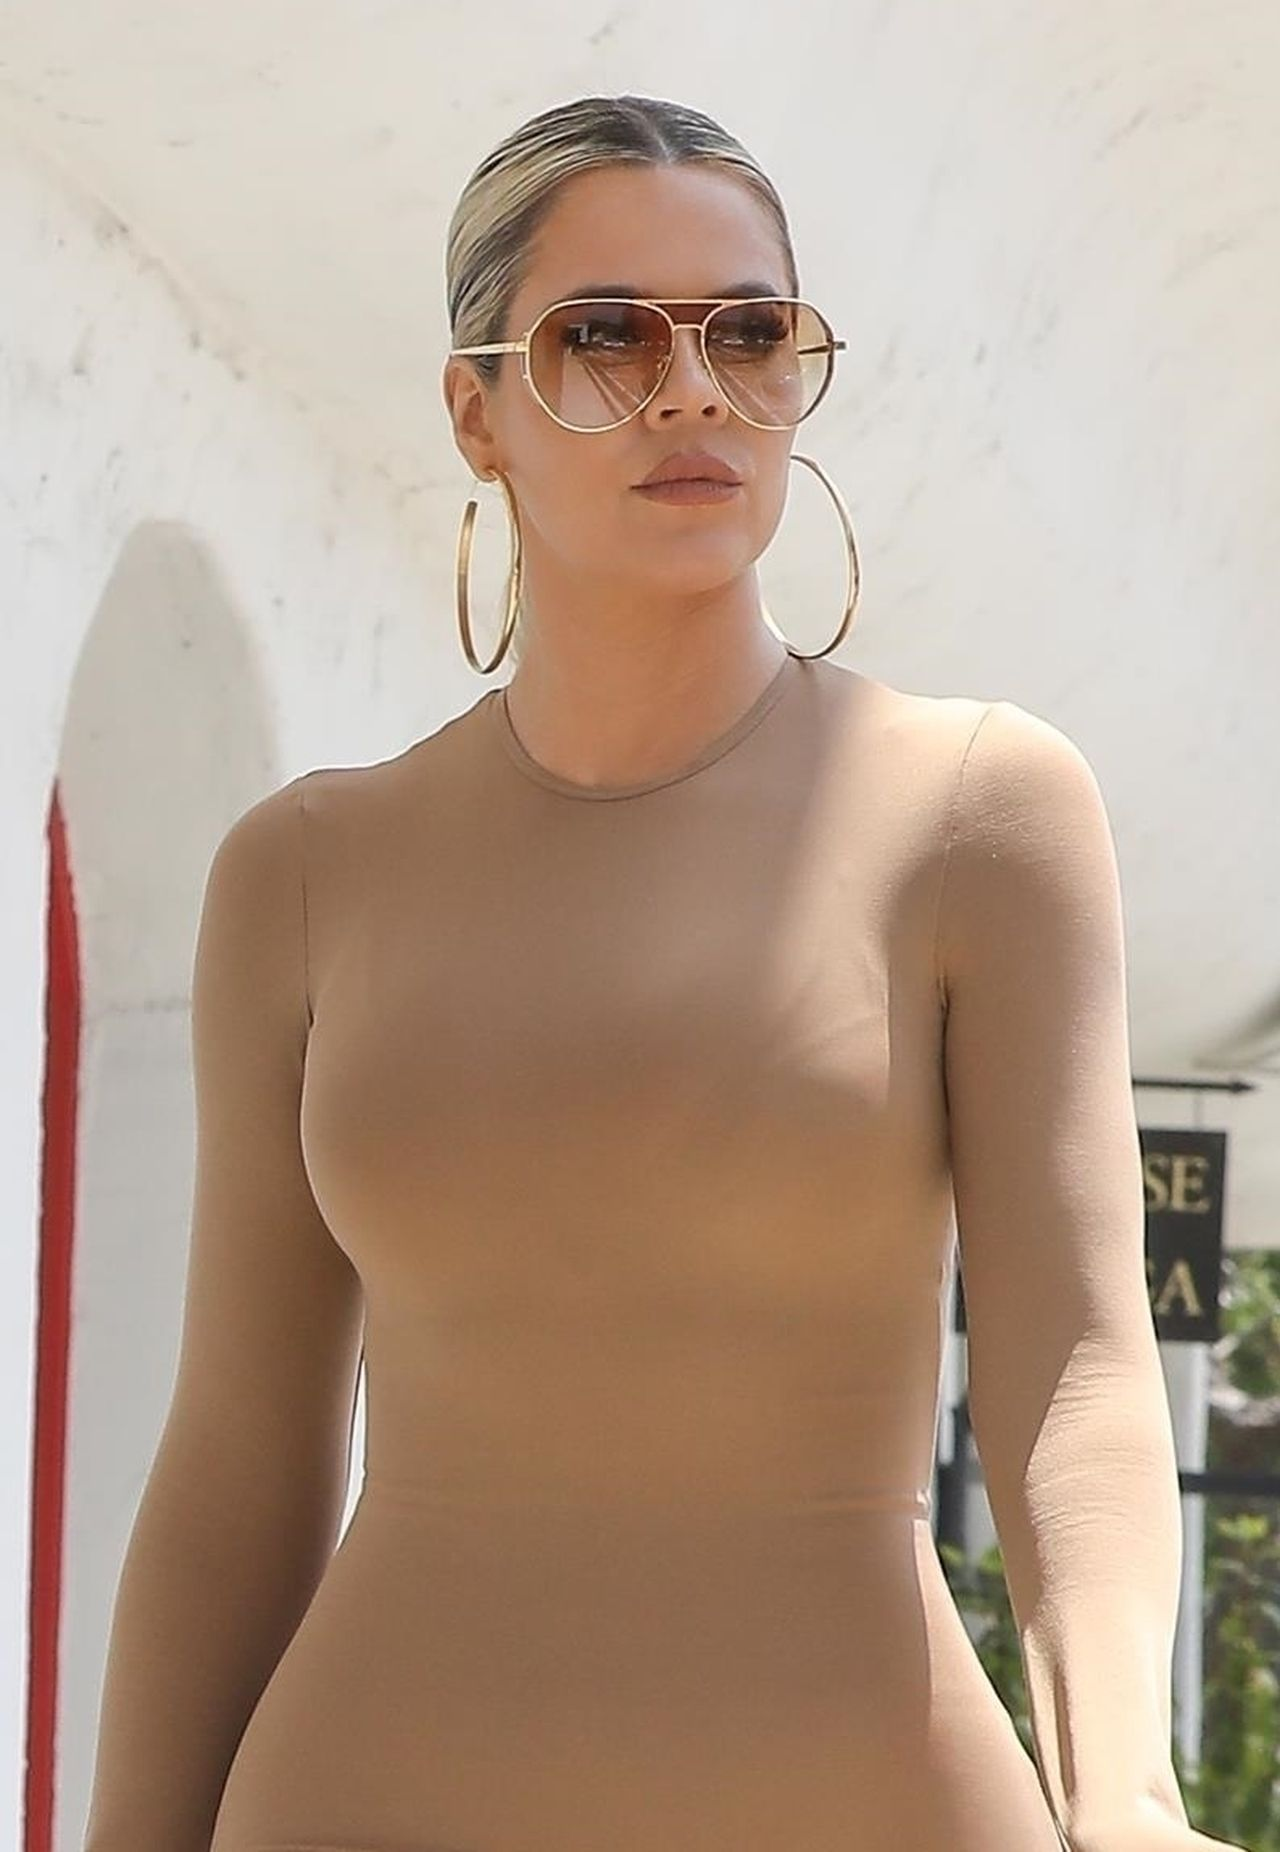 *EXCLUSIVE* Khloe and Kim Kardashian stun in skintight maxi dresses while out with Scott Disick at Malibu toy store